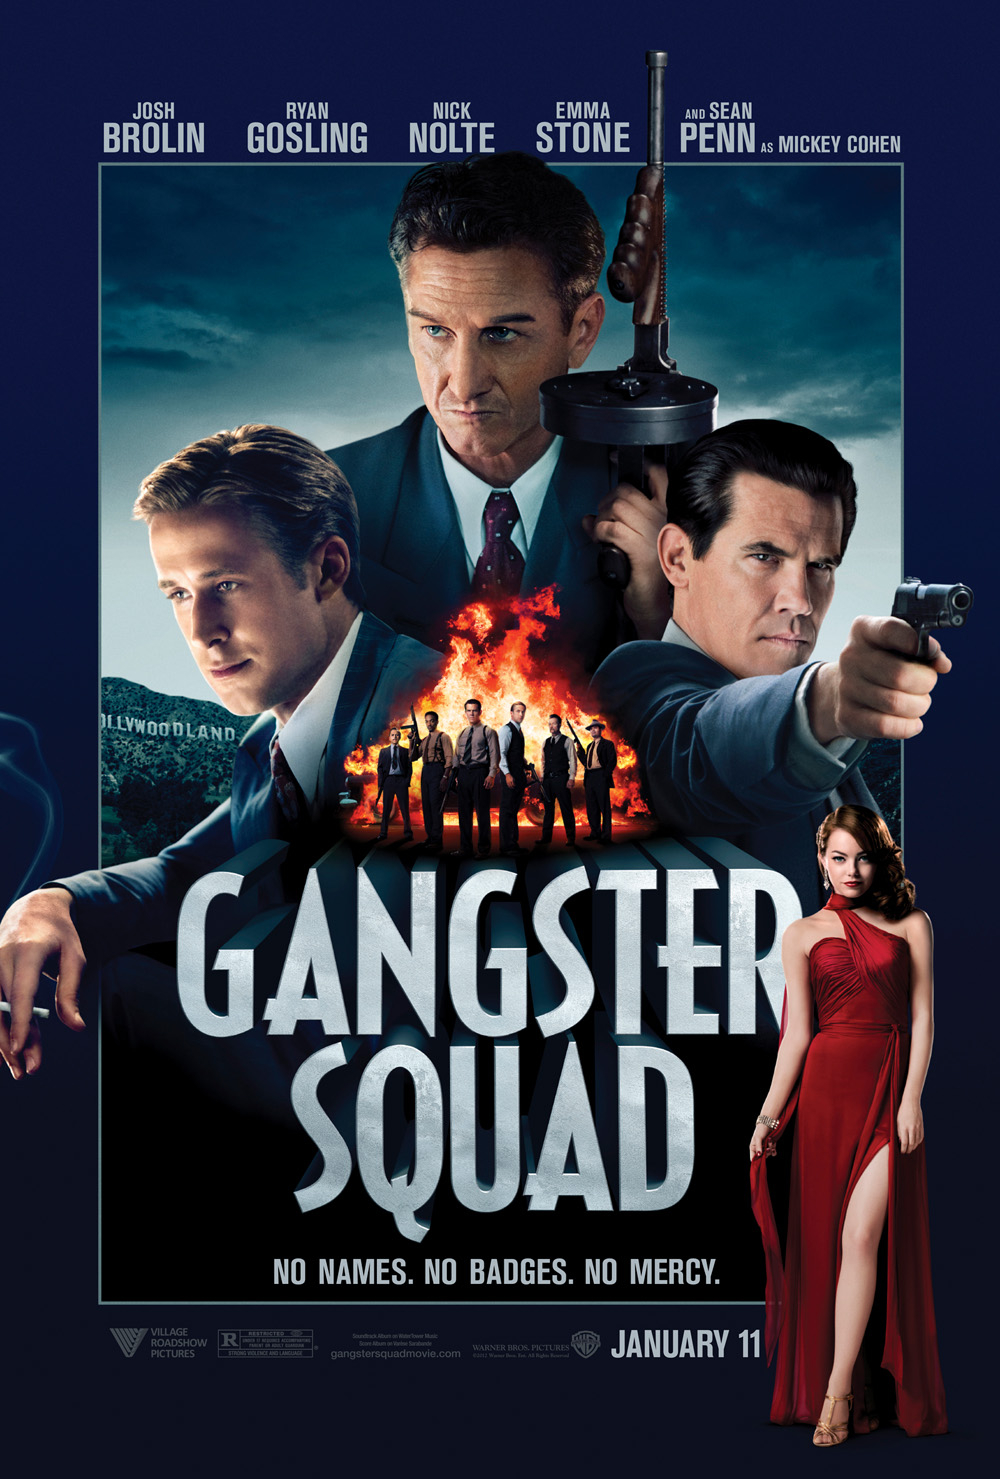 essays on gangster films Genre in film is how you can sort between different types of film within all aspects of genre there are similarities between films this places them within a certain genre in this essay, i am going to compare two films of the gangster genre and see how they are similar, and what places them.